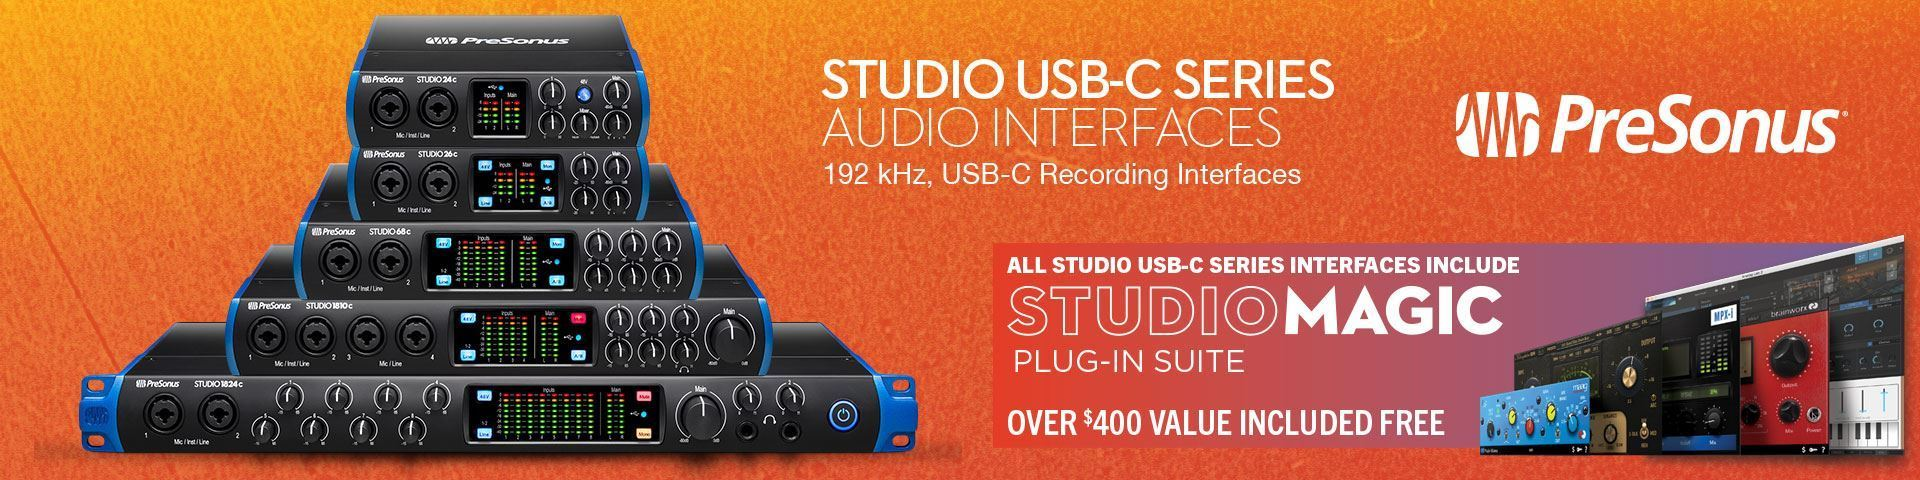 Presonus USB Audio Interfaces